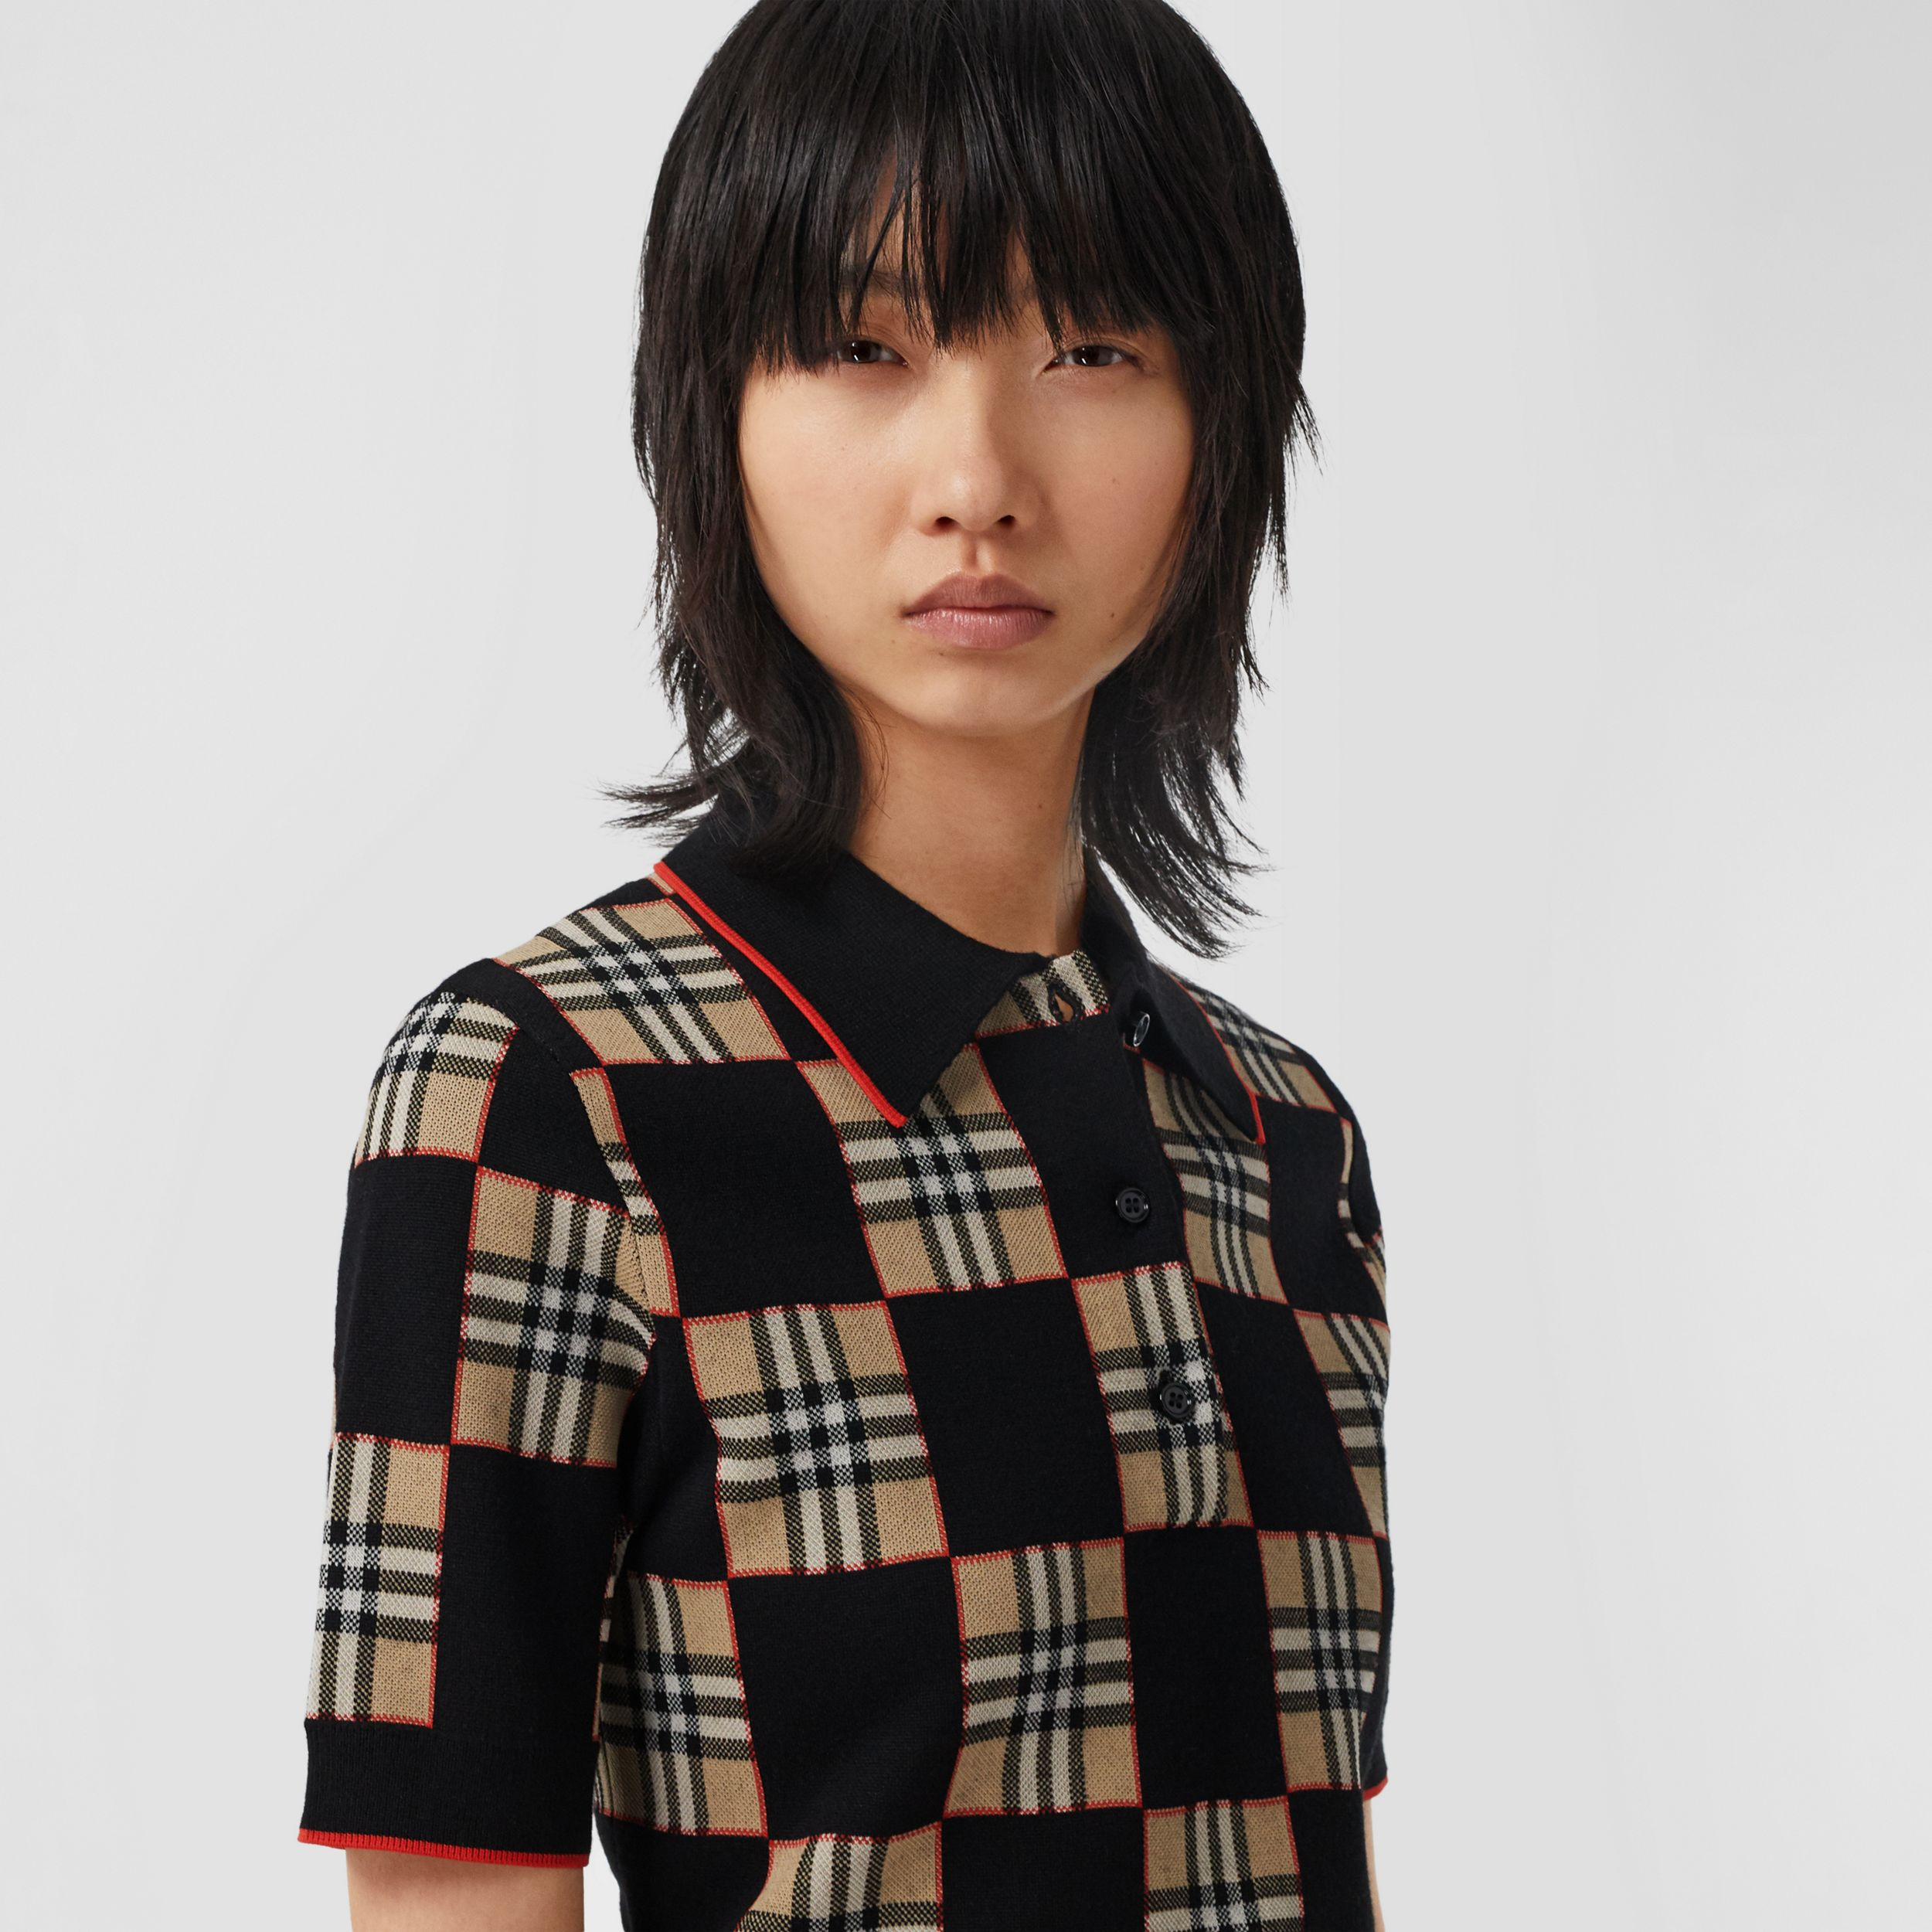 Chequer Merino Wool Blend Jacquard Polo Shirt in Black/archive Beige - Women | Burberry Hong Kong S.A.R. - 2